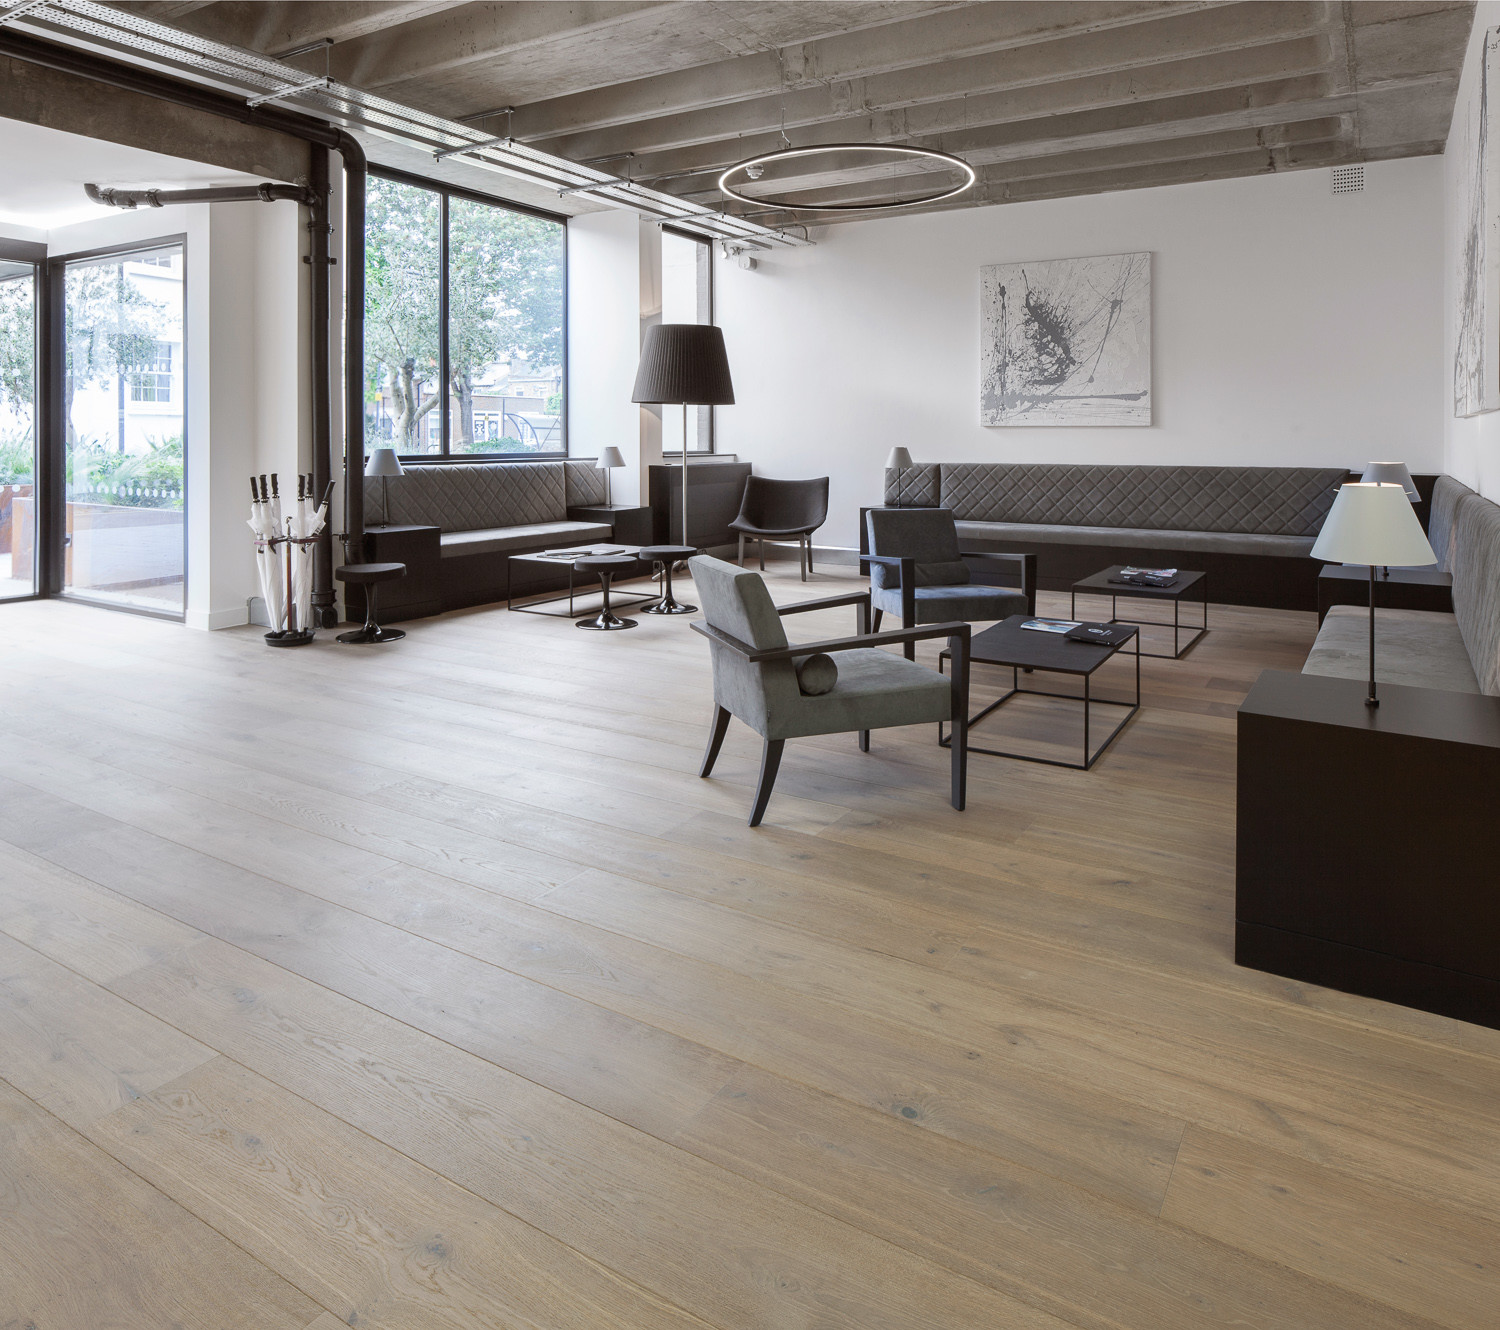 Hardwood Floor Refinishing Portland Of Blog Archives the New Reclaimed Flooring Companythe New with the Report Indicated that 82 Of Workers who Were Employed In Places with Eight or More Wood Surfaces Had Higher Personal Productivity Mood Concentration